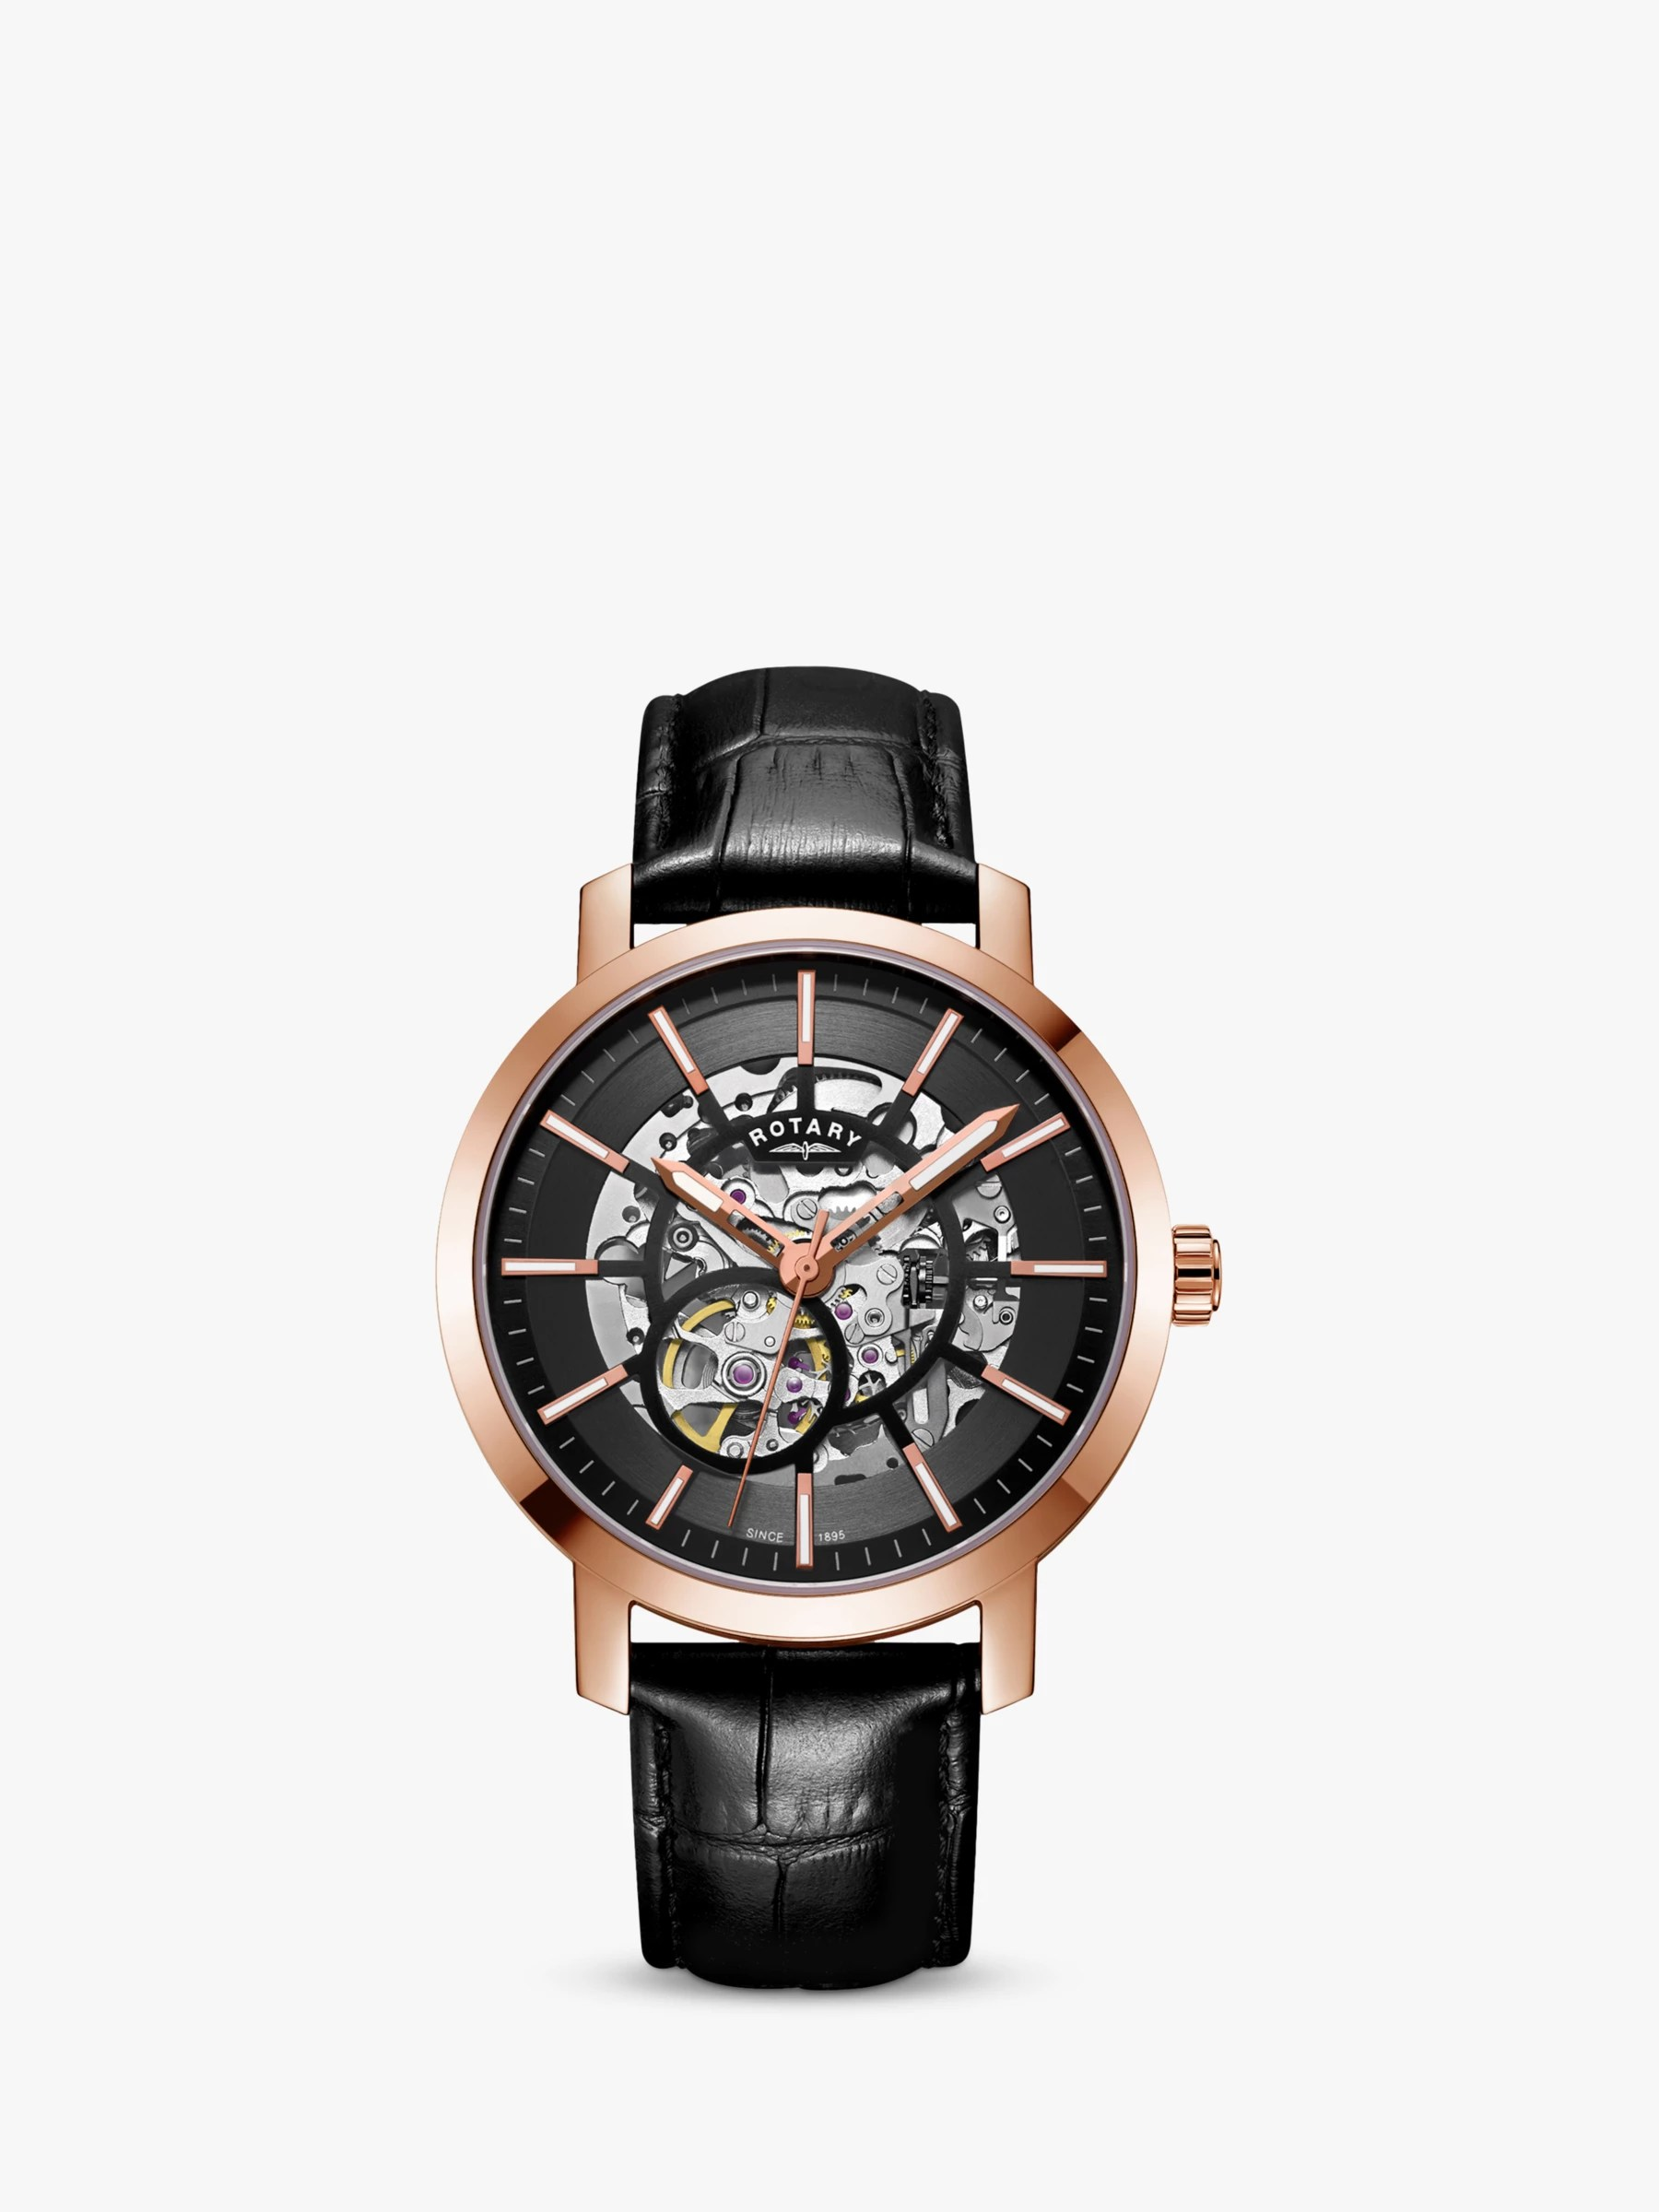 Rotary Men's Greenwich Skeleton Automatic Leather Strap Watch. Black GS05354/04 at John Lewis & Partners